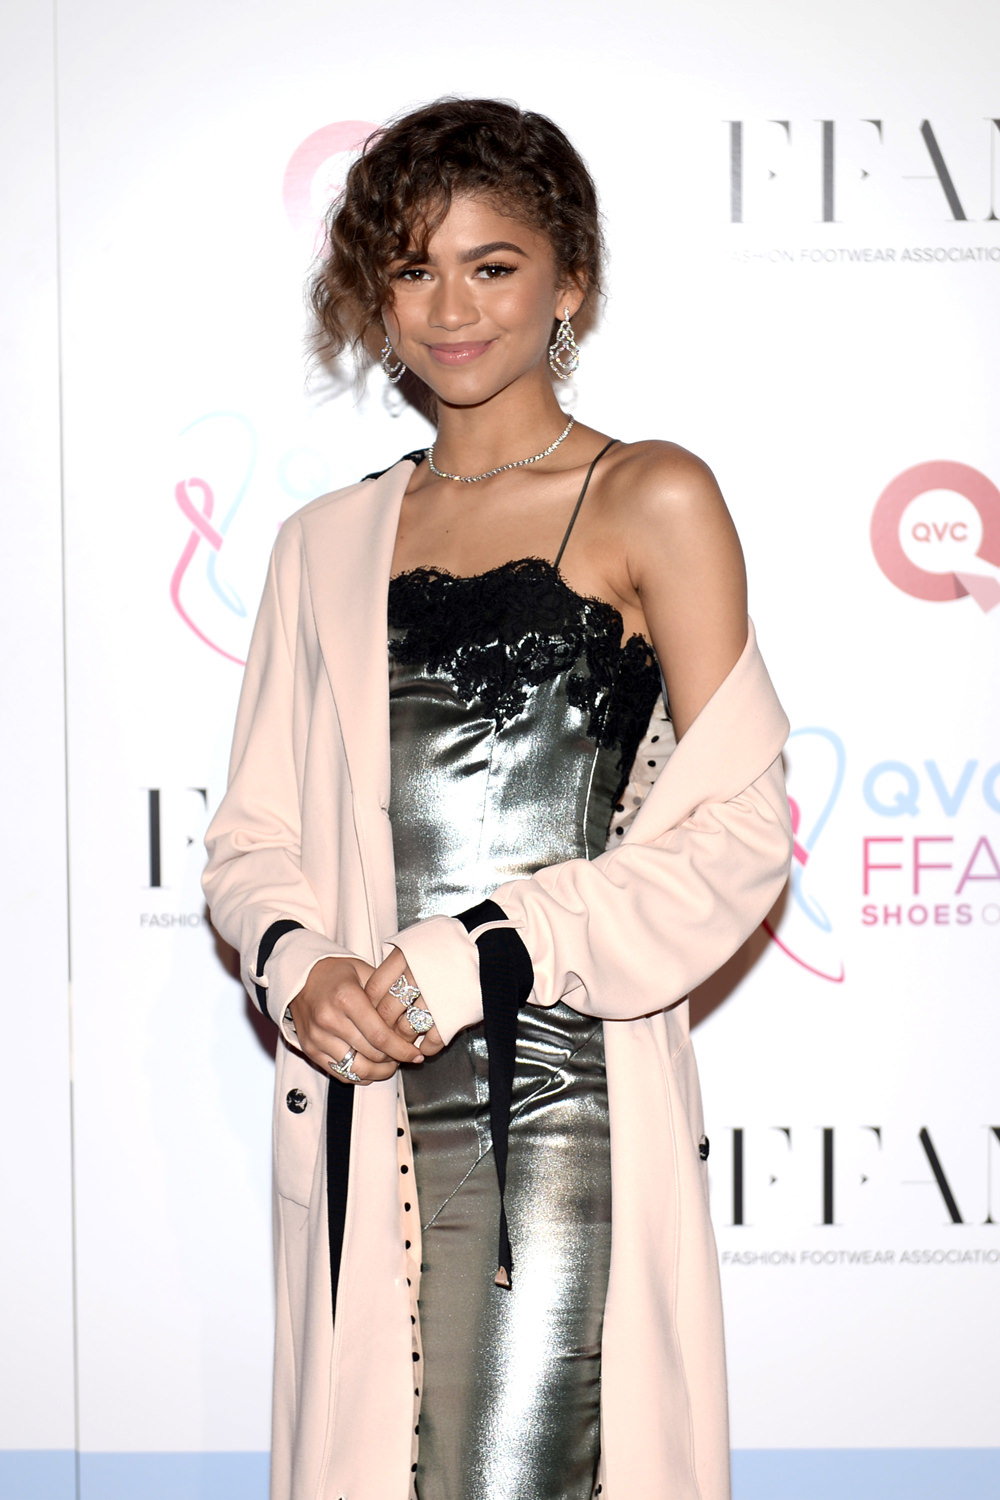 Zendaya-Coleman-FFANY-Shoes-Sale-QVC-Event-Red-Carpet-Fashion-Georgine-Tom-Lorenzo-Site-1.jpg